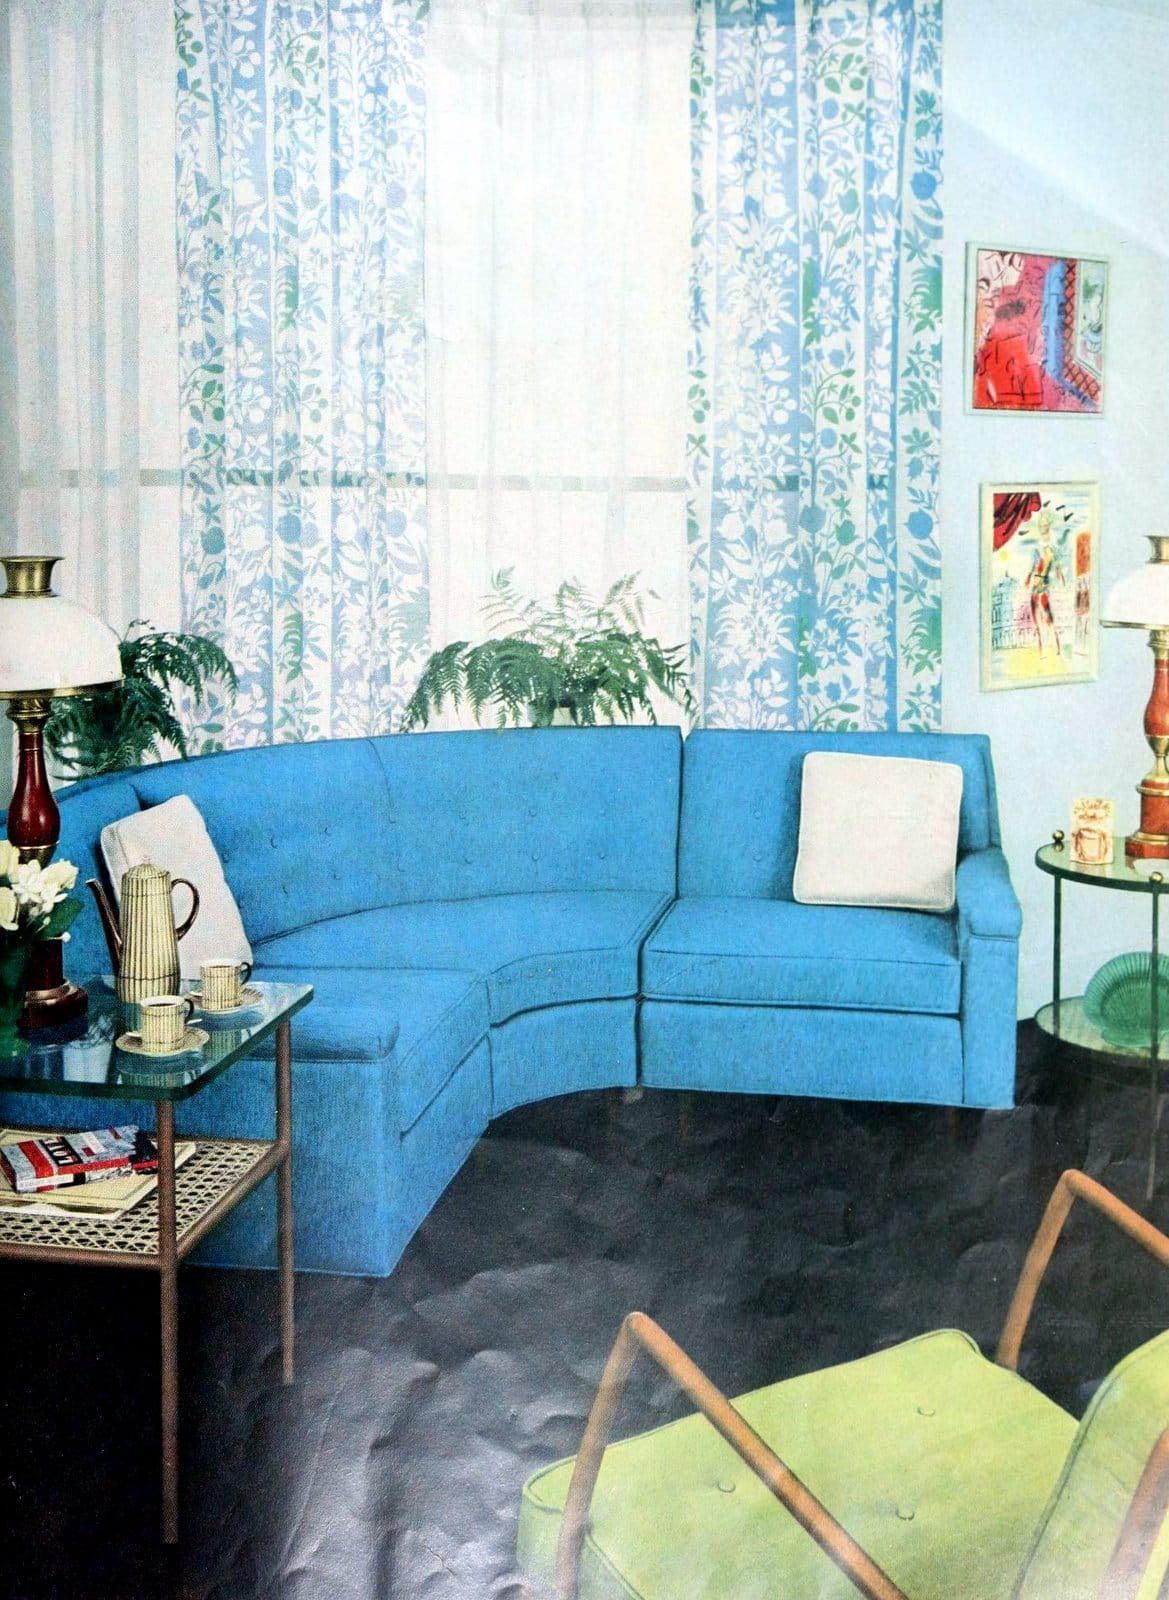 Blue curved sofa dominates this retro room